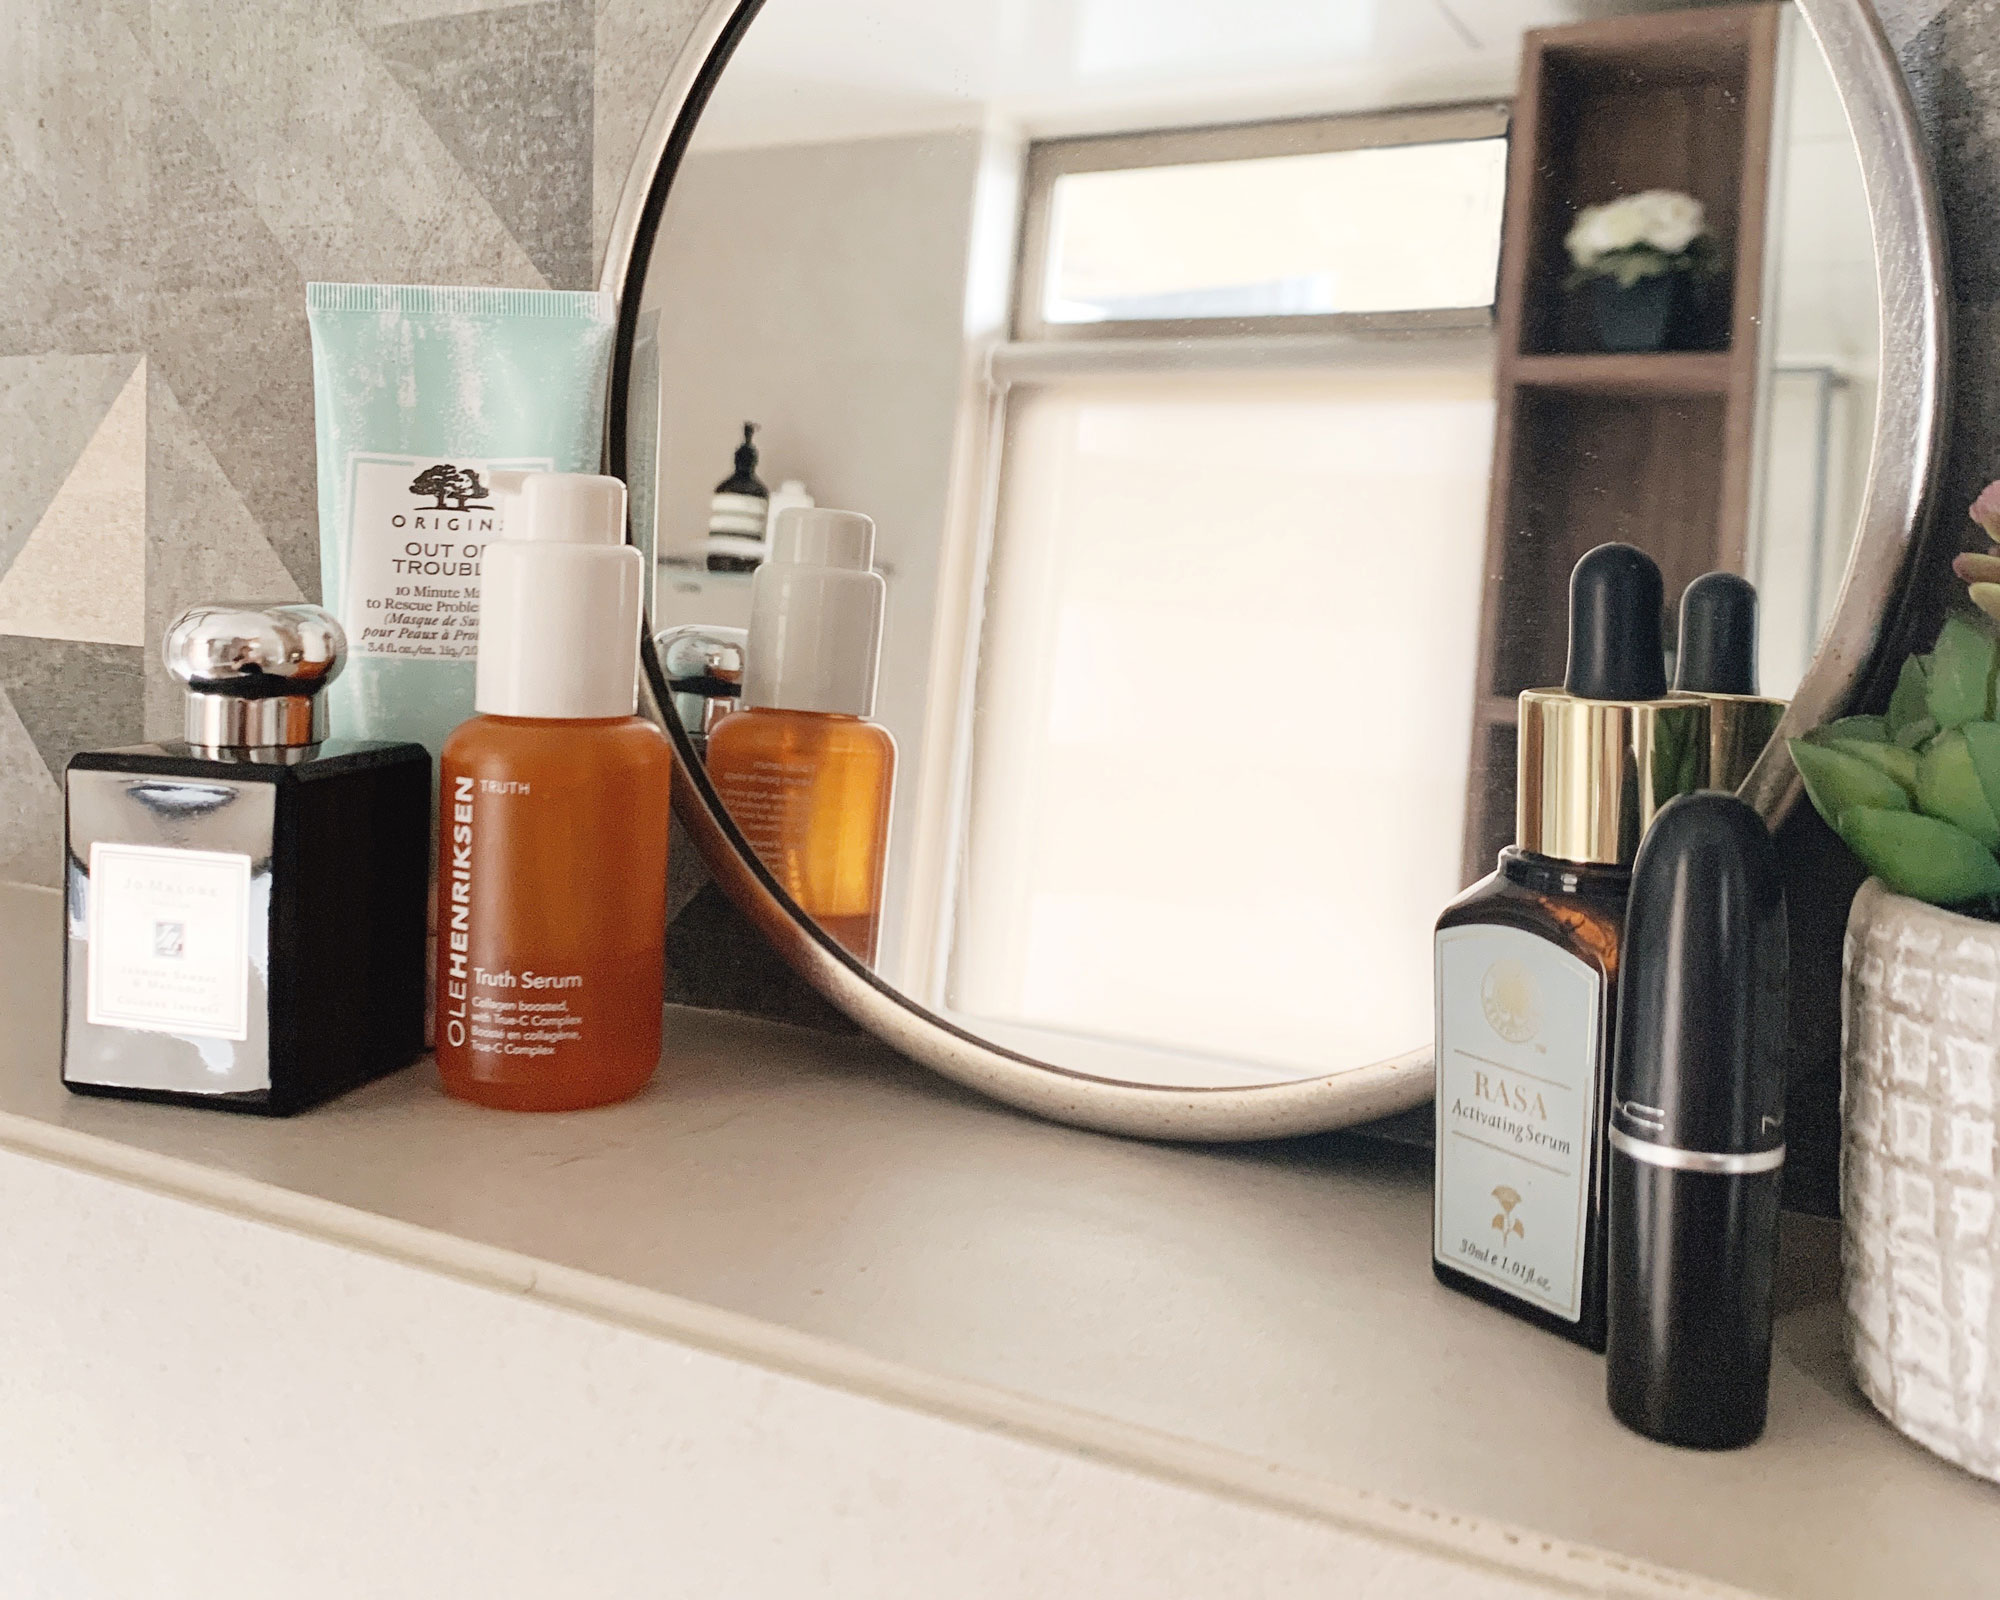 Beauty products worth repurchasing, including Olehenriksen's Truth Serum. It's the best Vitamin C I've ever tried!!!